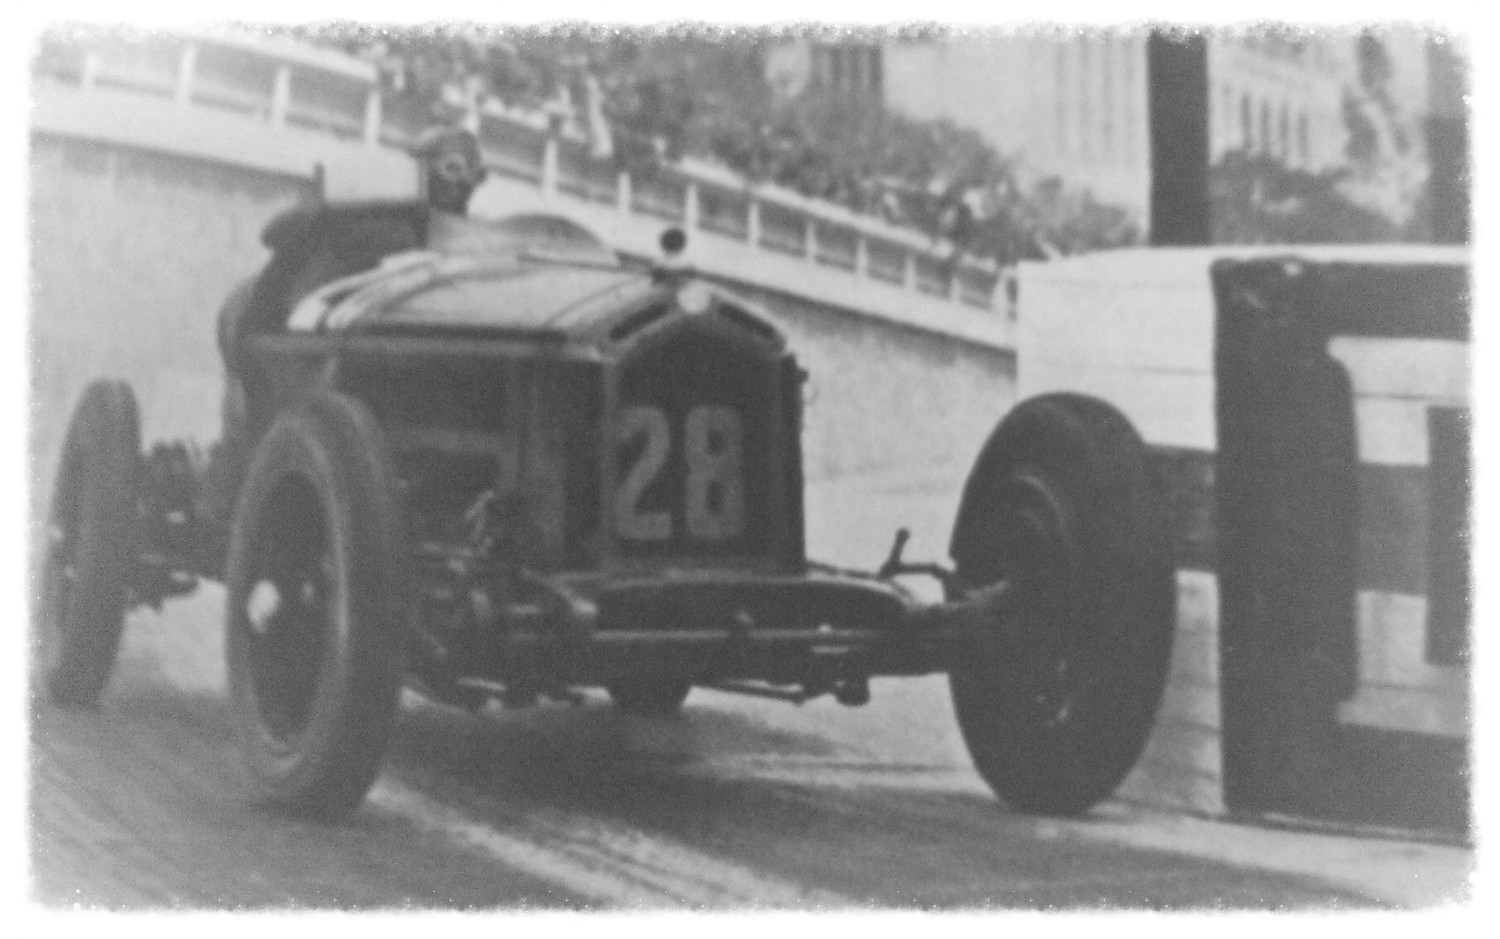 Nuvolari at Monaco circa 1932